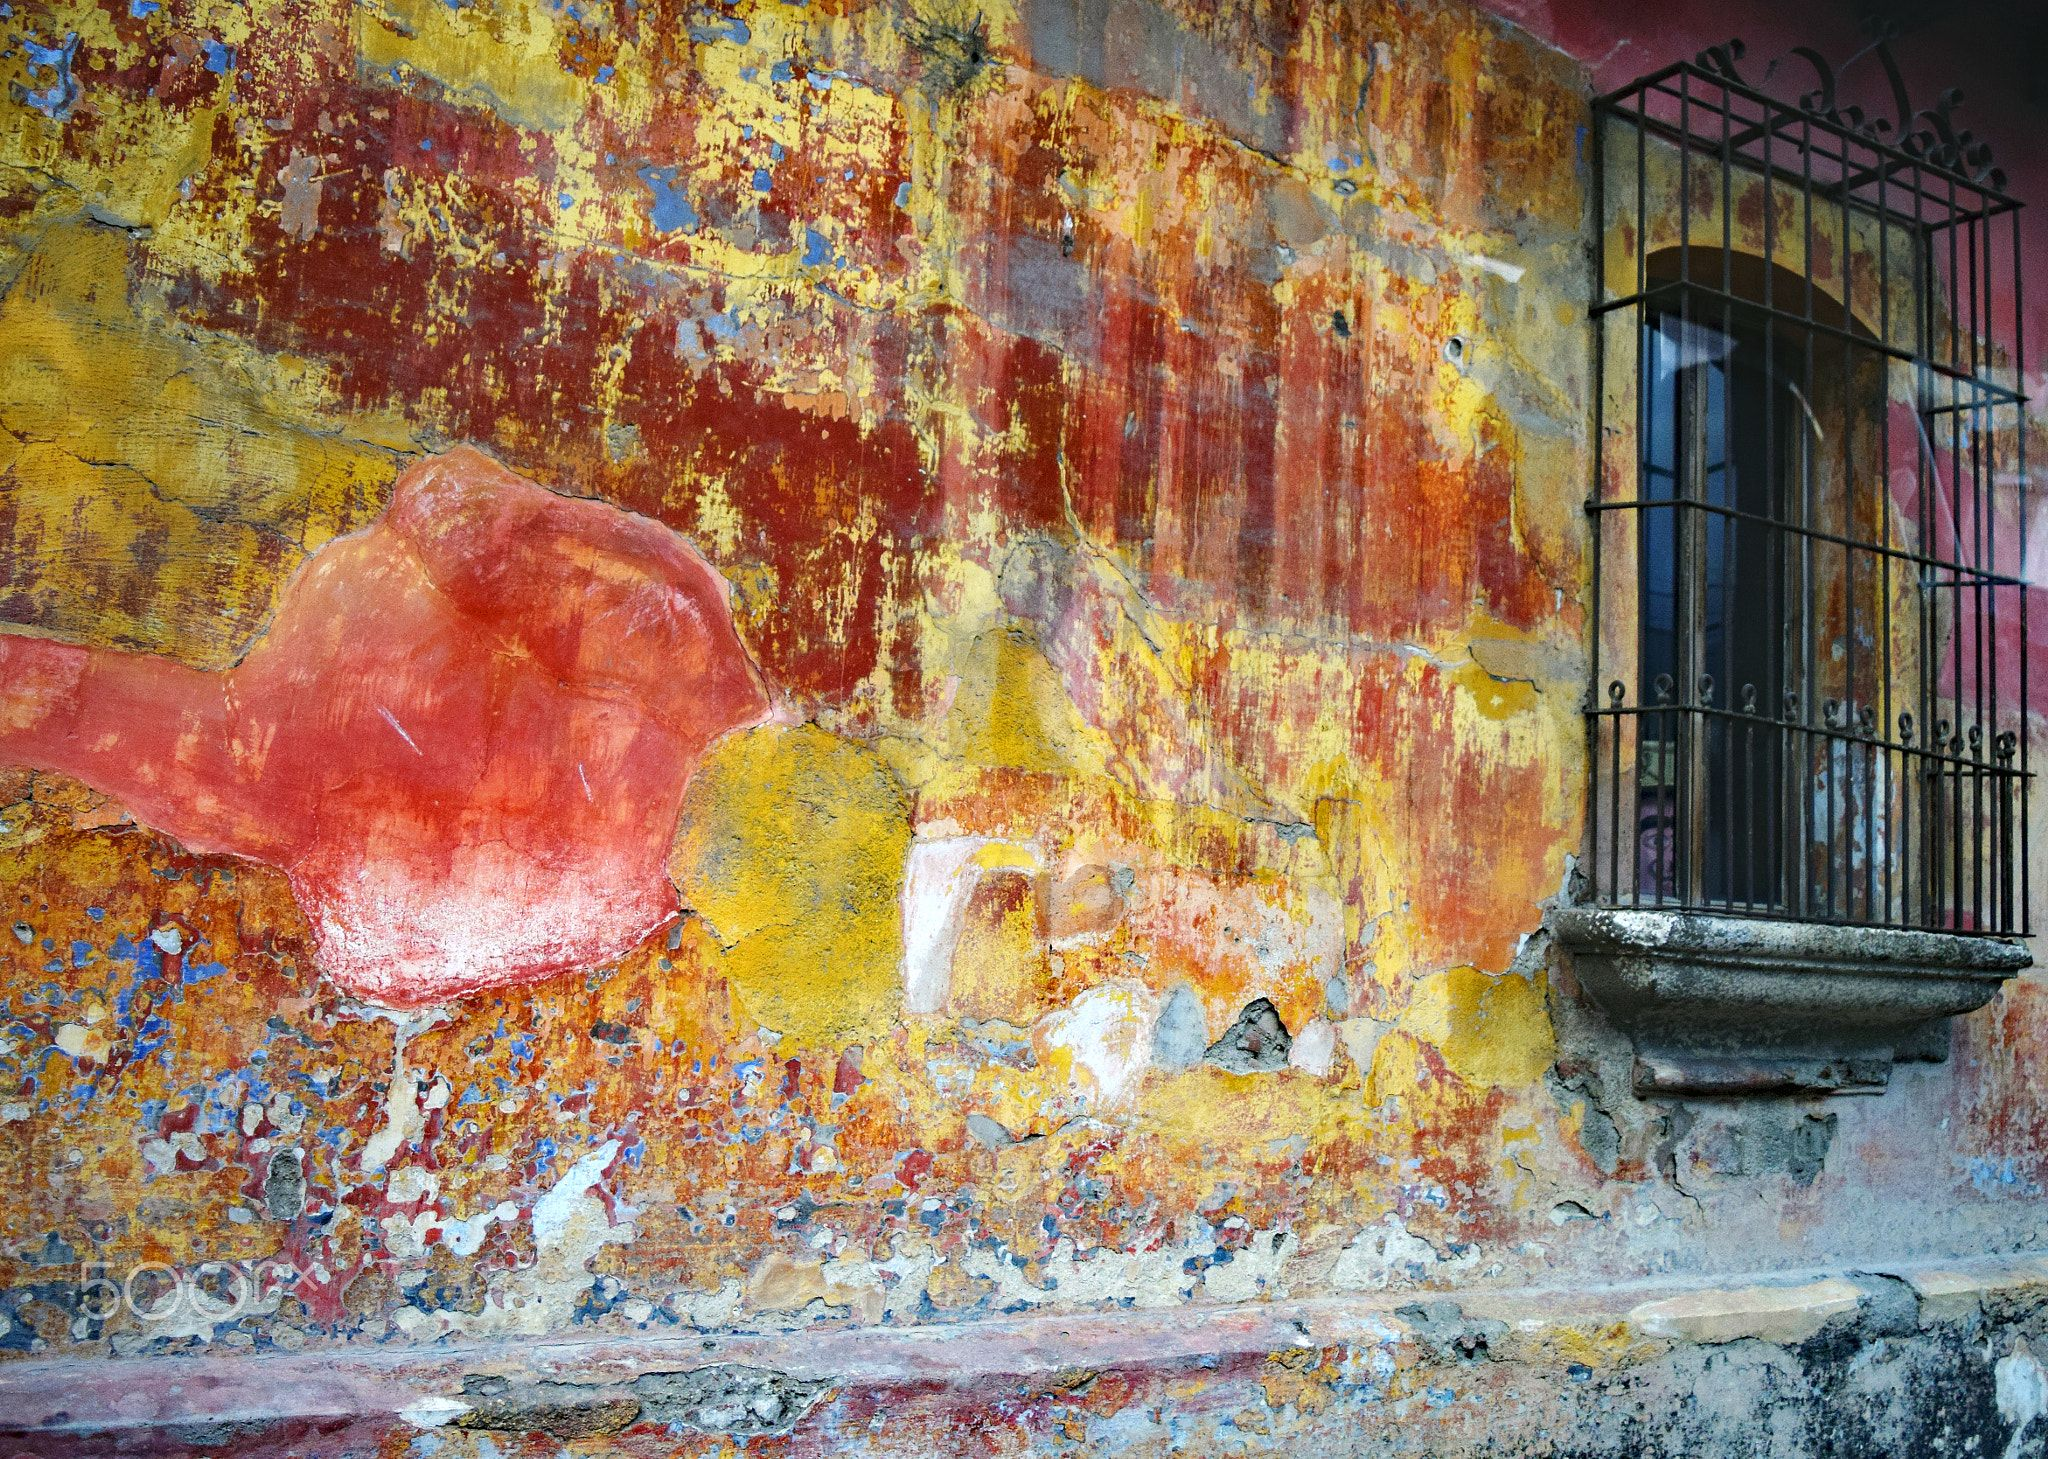 Antigua Wall Just A Something I Came Across Wall Wandering The Streets Of Antigua It S The